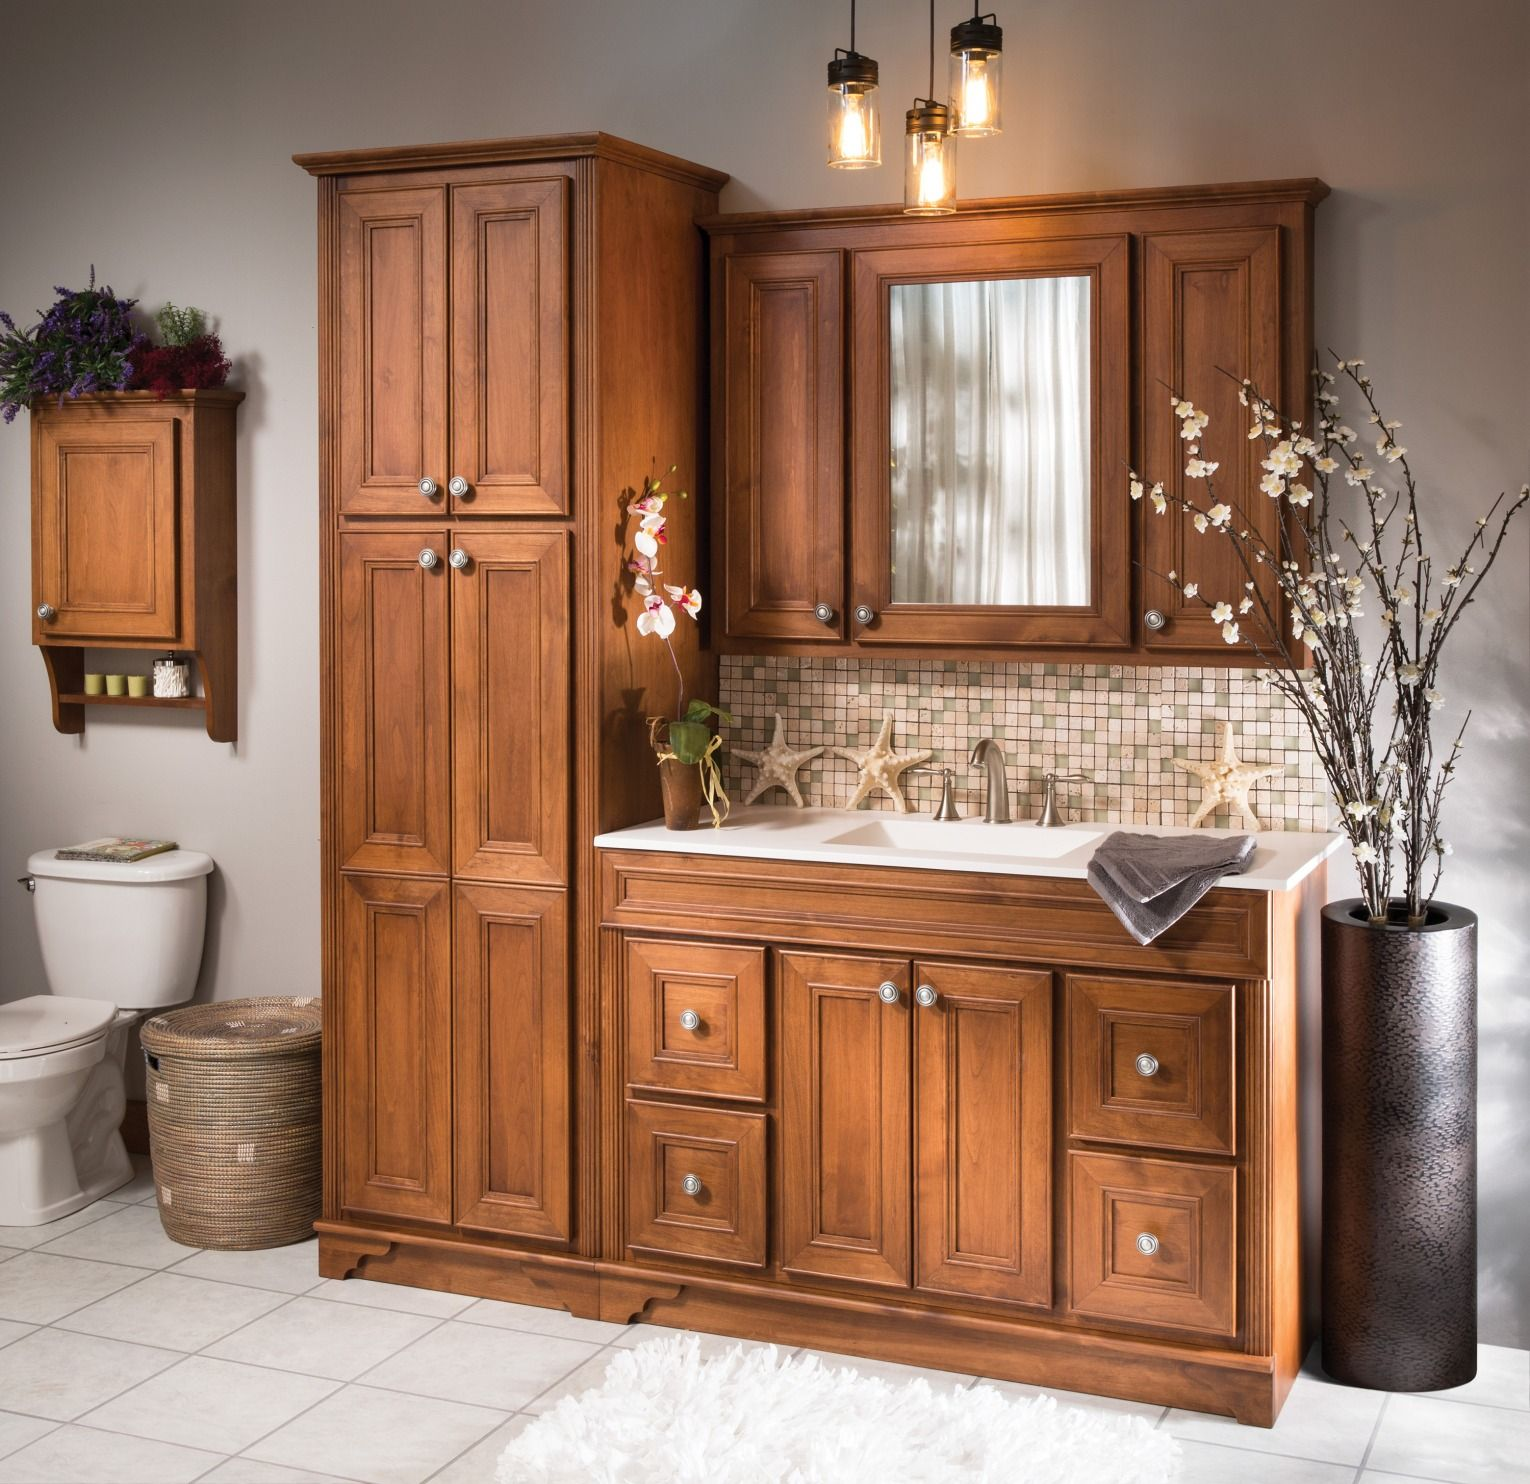 Reinvigorate Your Bathroom With A Briarwood Highland Vanity Set Complete With Four Large Drawers This St Small Bathroom Redo Bathroom Cabinetry Bath Makeover